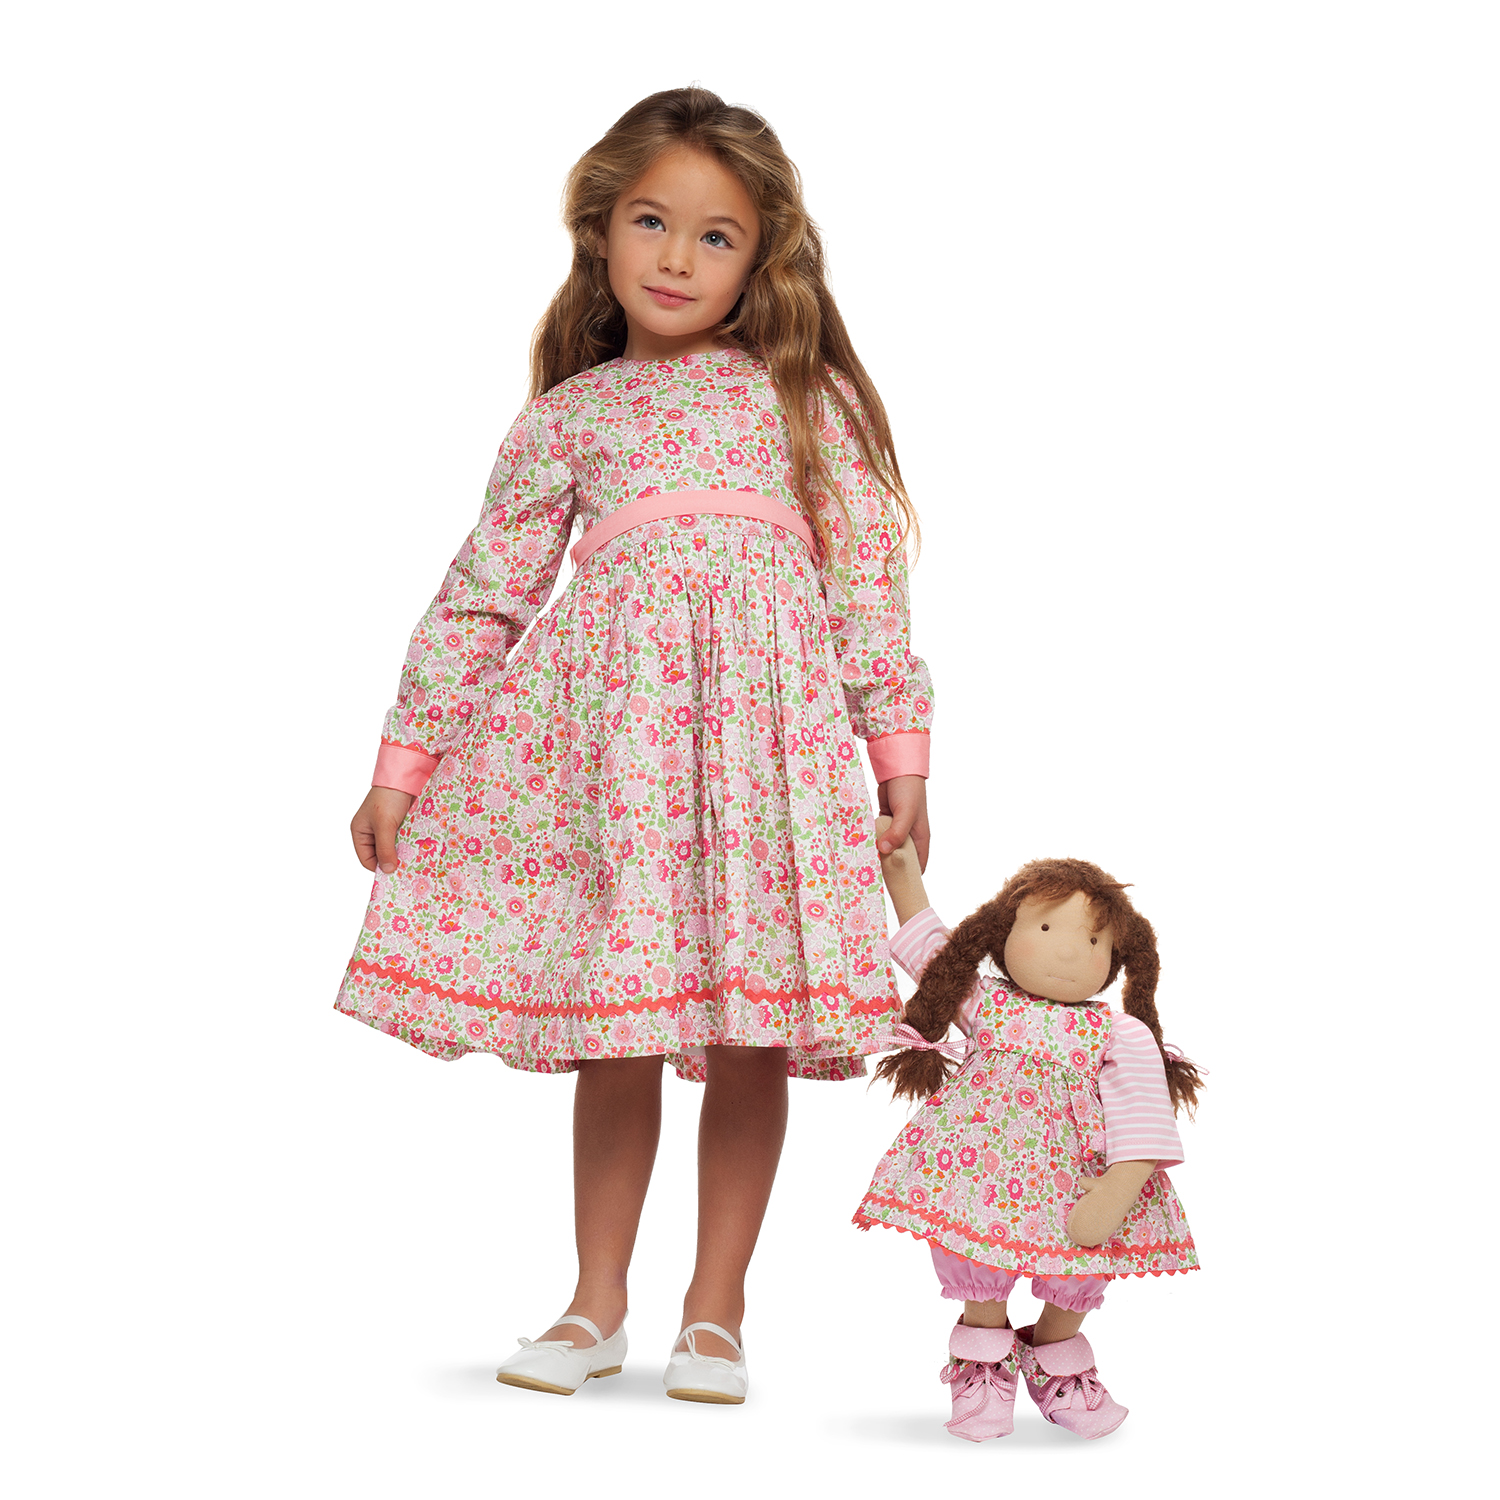 Lilly Party Dresses